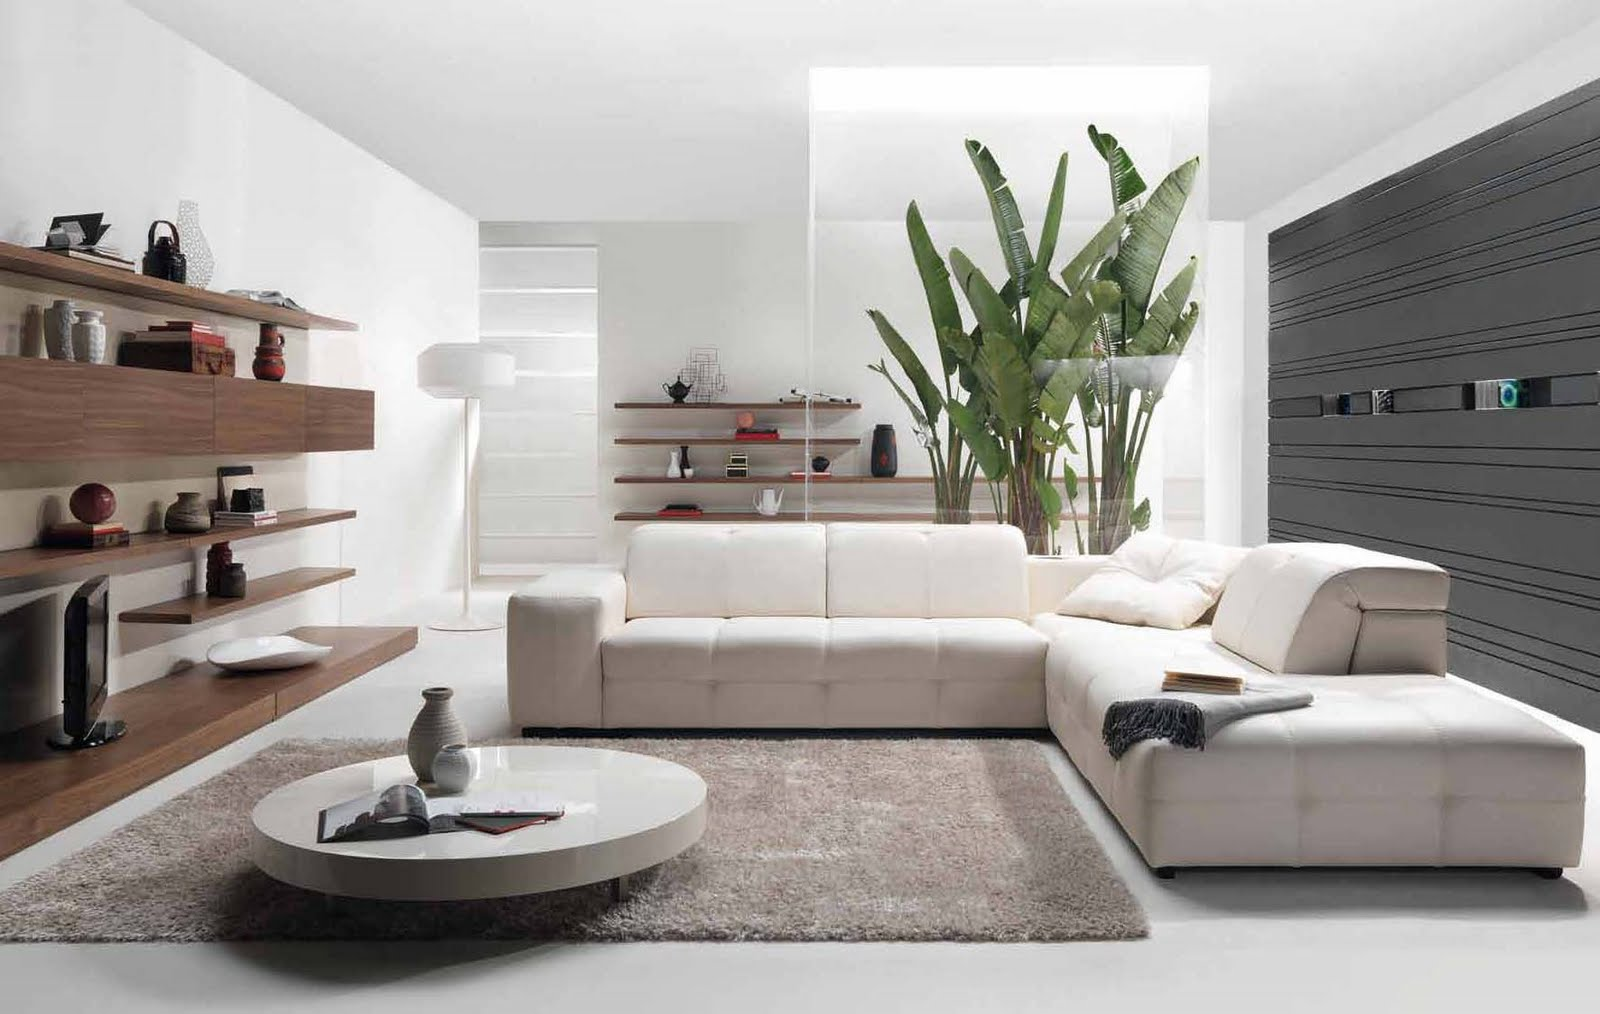 Future house design modern living room interior design styles 2010 by natuzzi - Interior design in living room ...